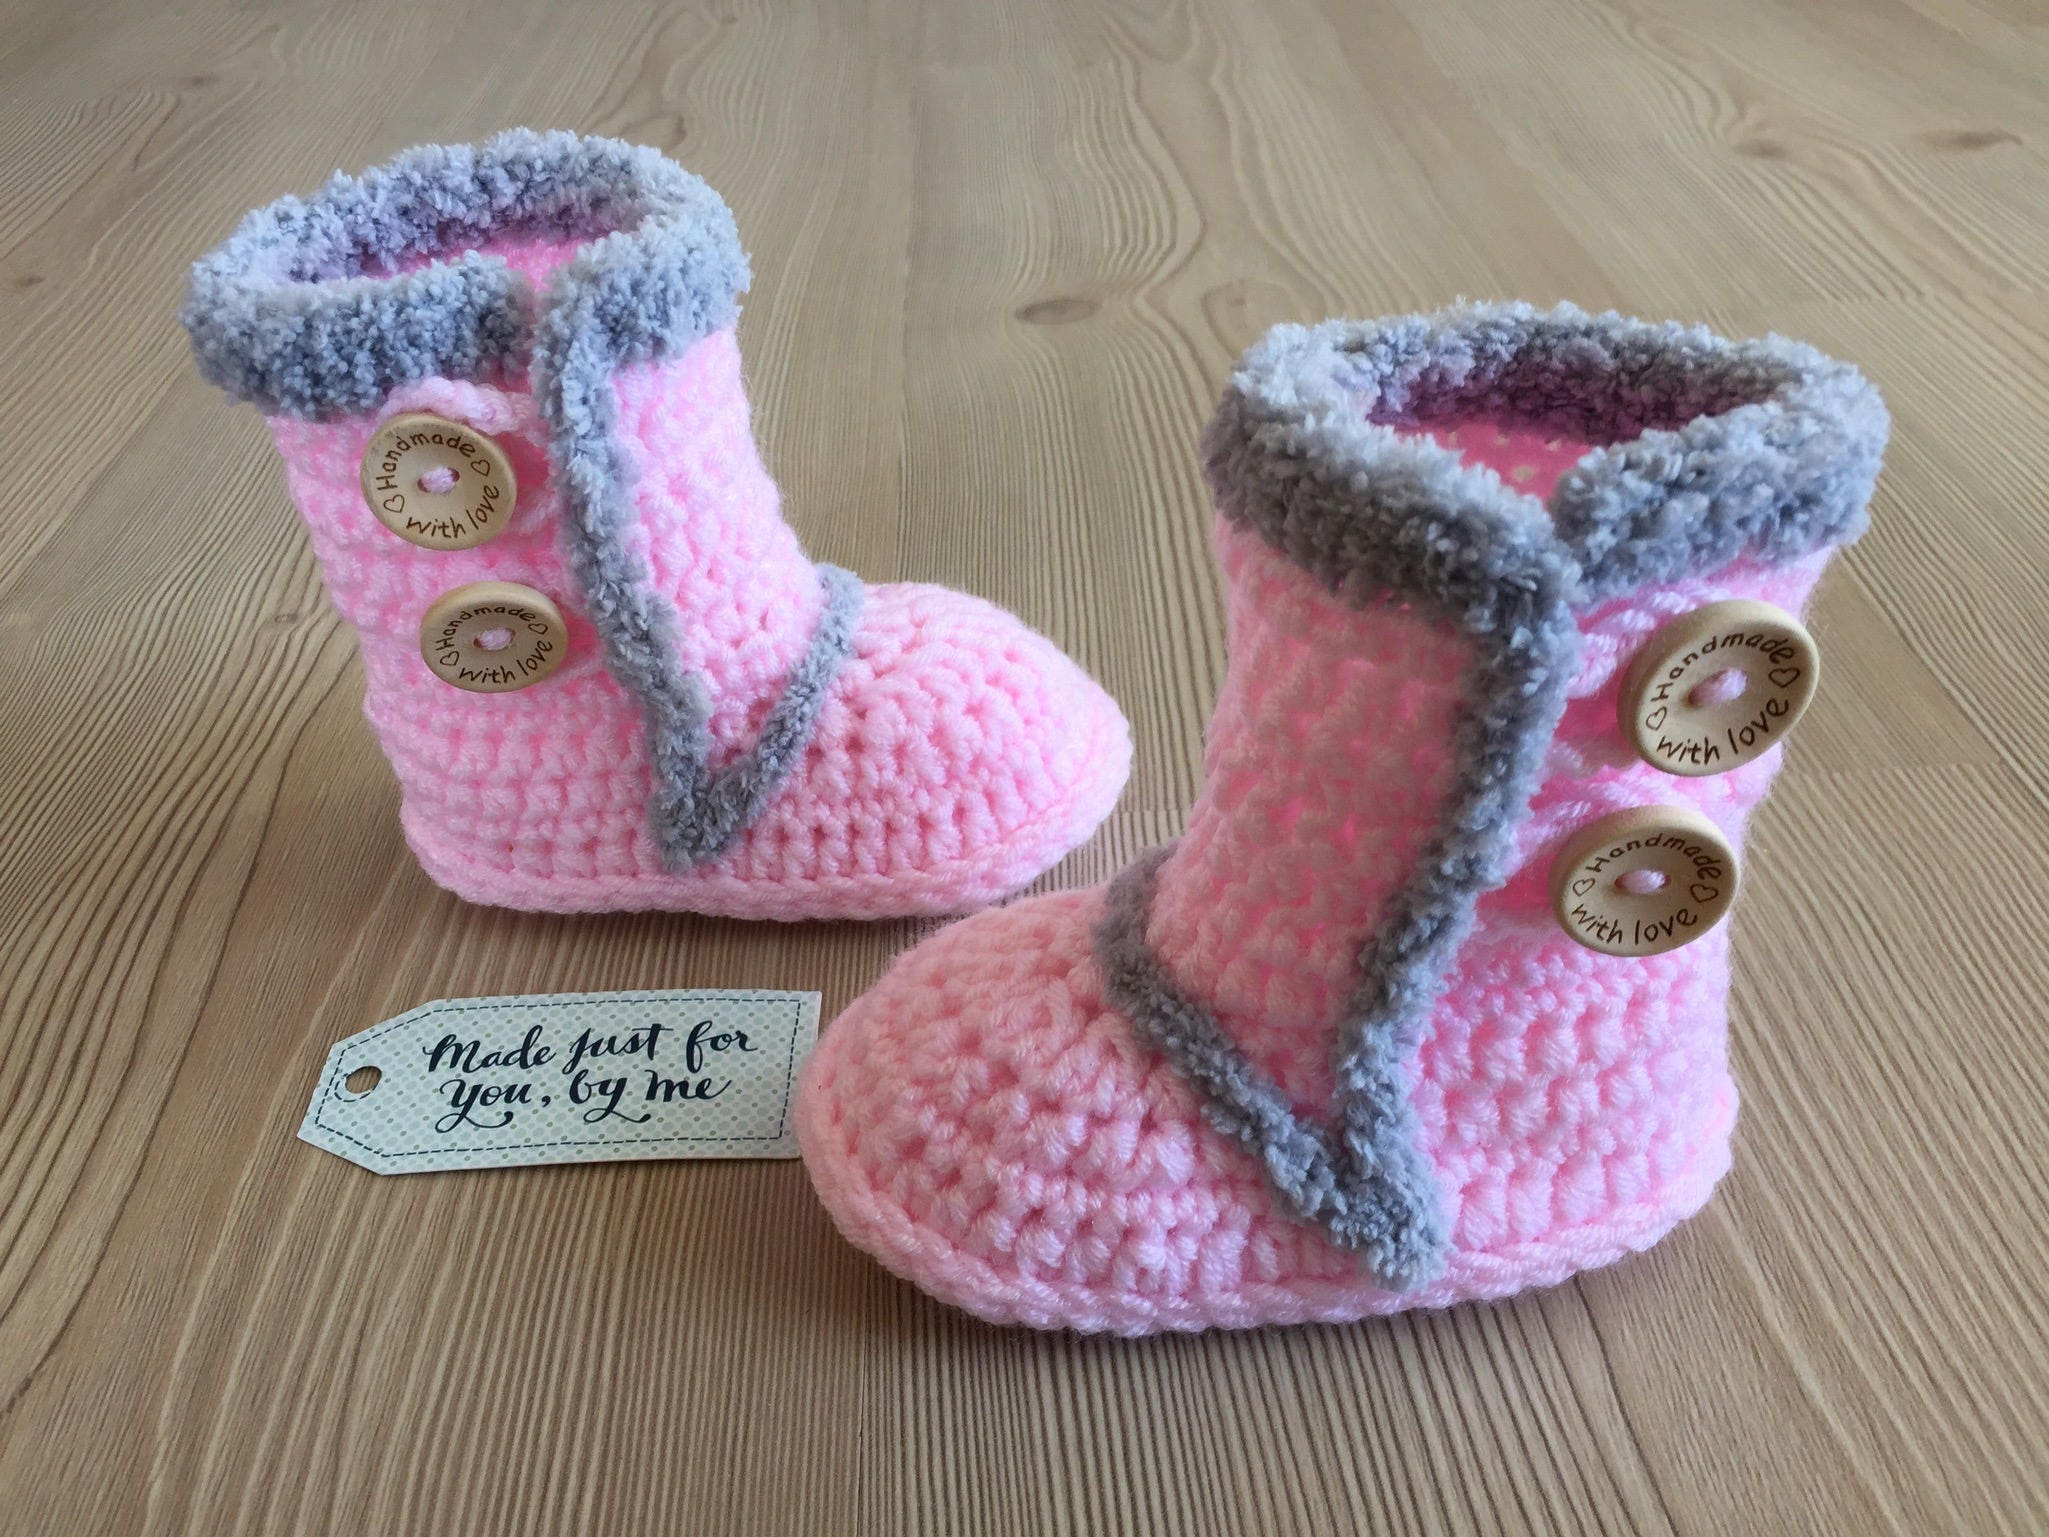 Just Had A Baby Gift Ideas : Crochet baby girl pink winter booties gift idea shower